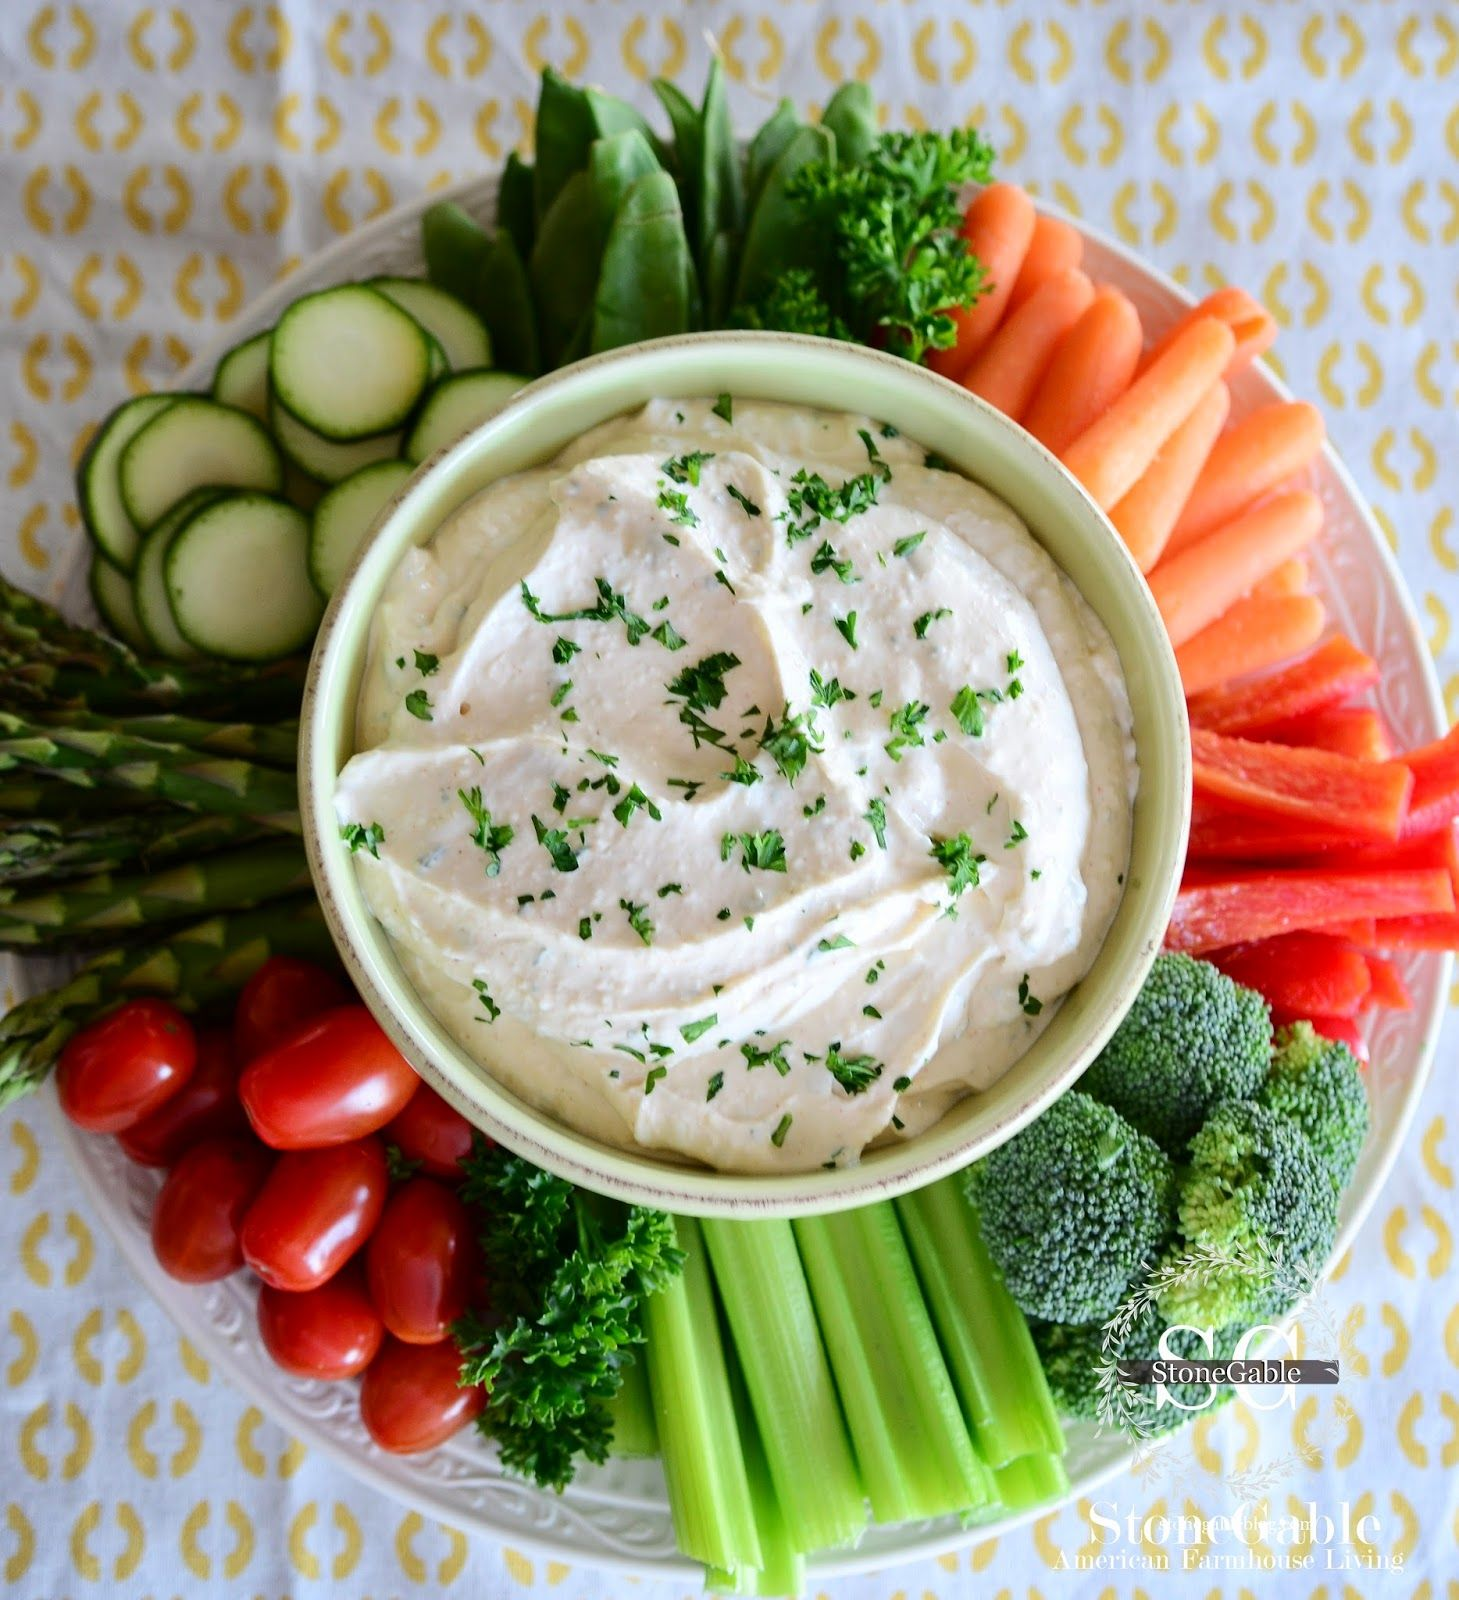 The Dip With Images Sour Cream Veggie Dip Appetizer Recipes Food